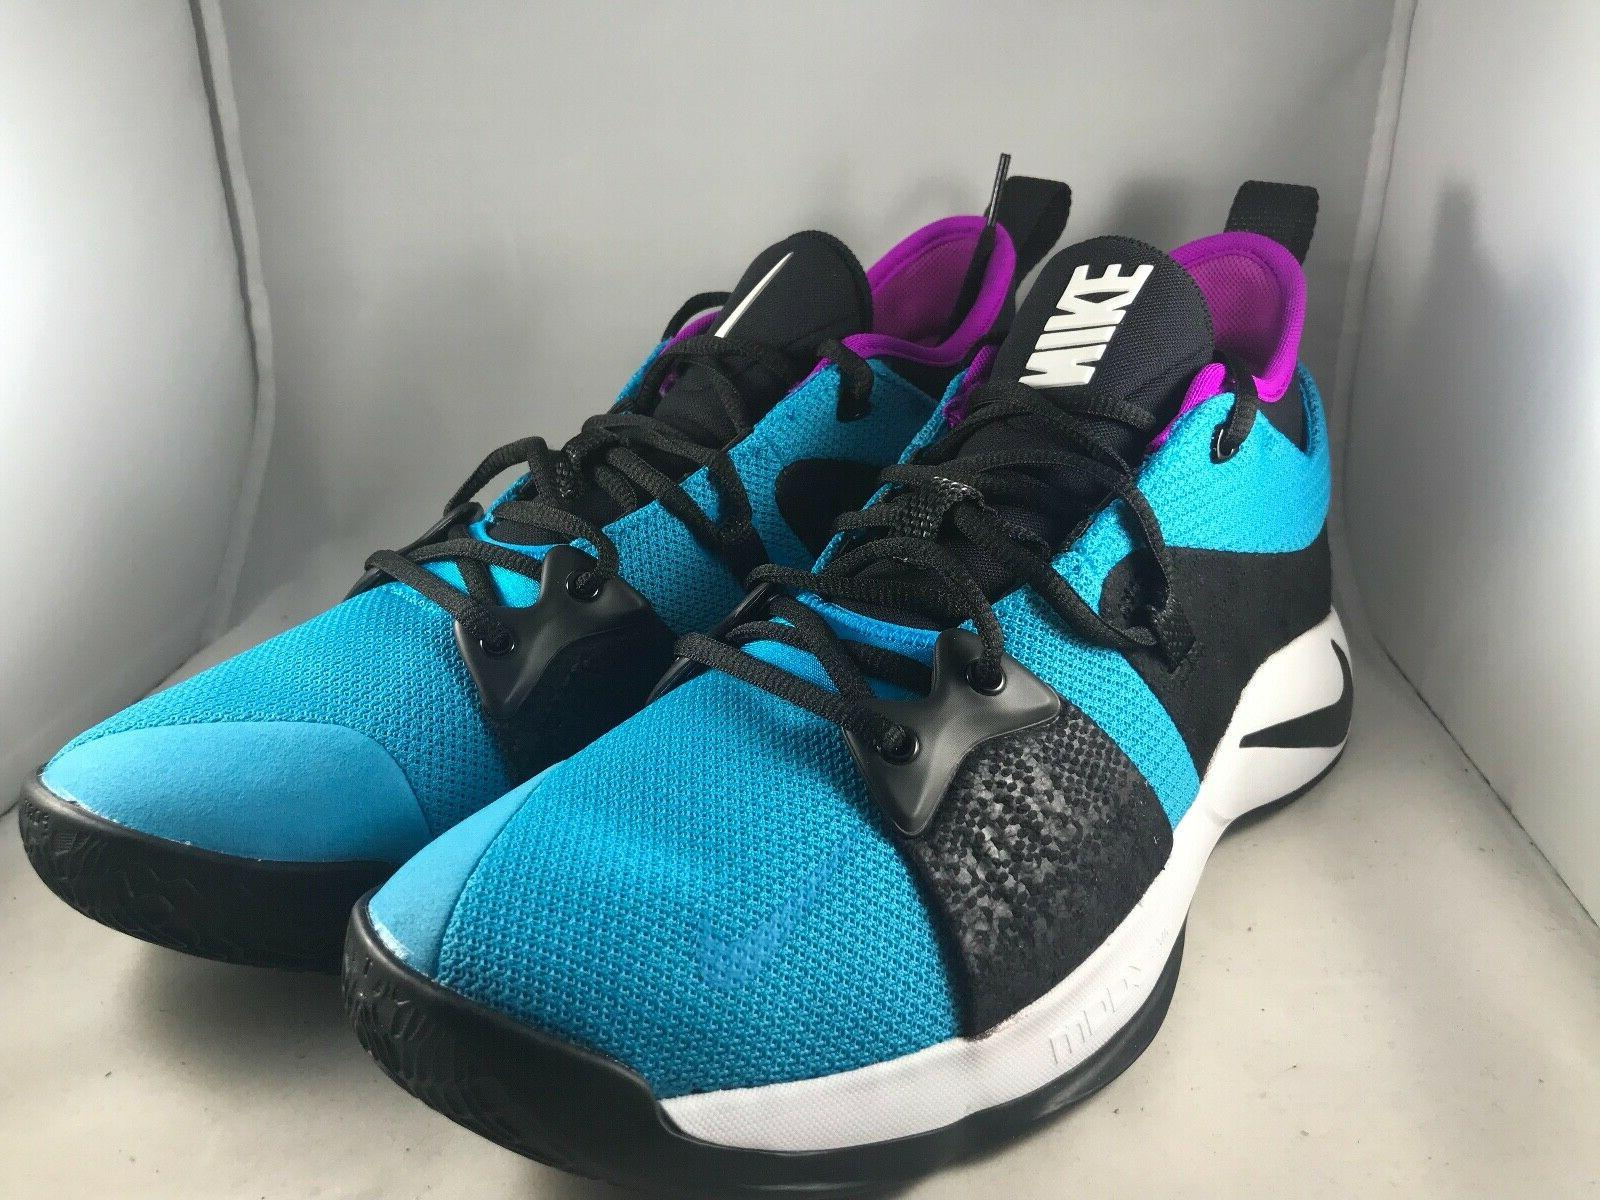 Nike PG Lagoon Shoes Size